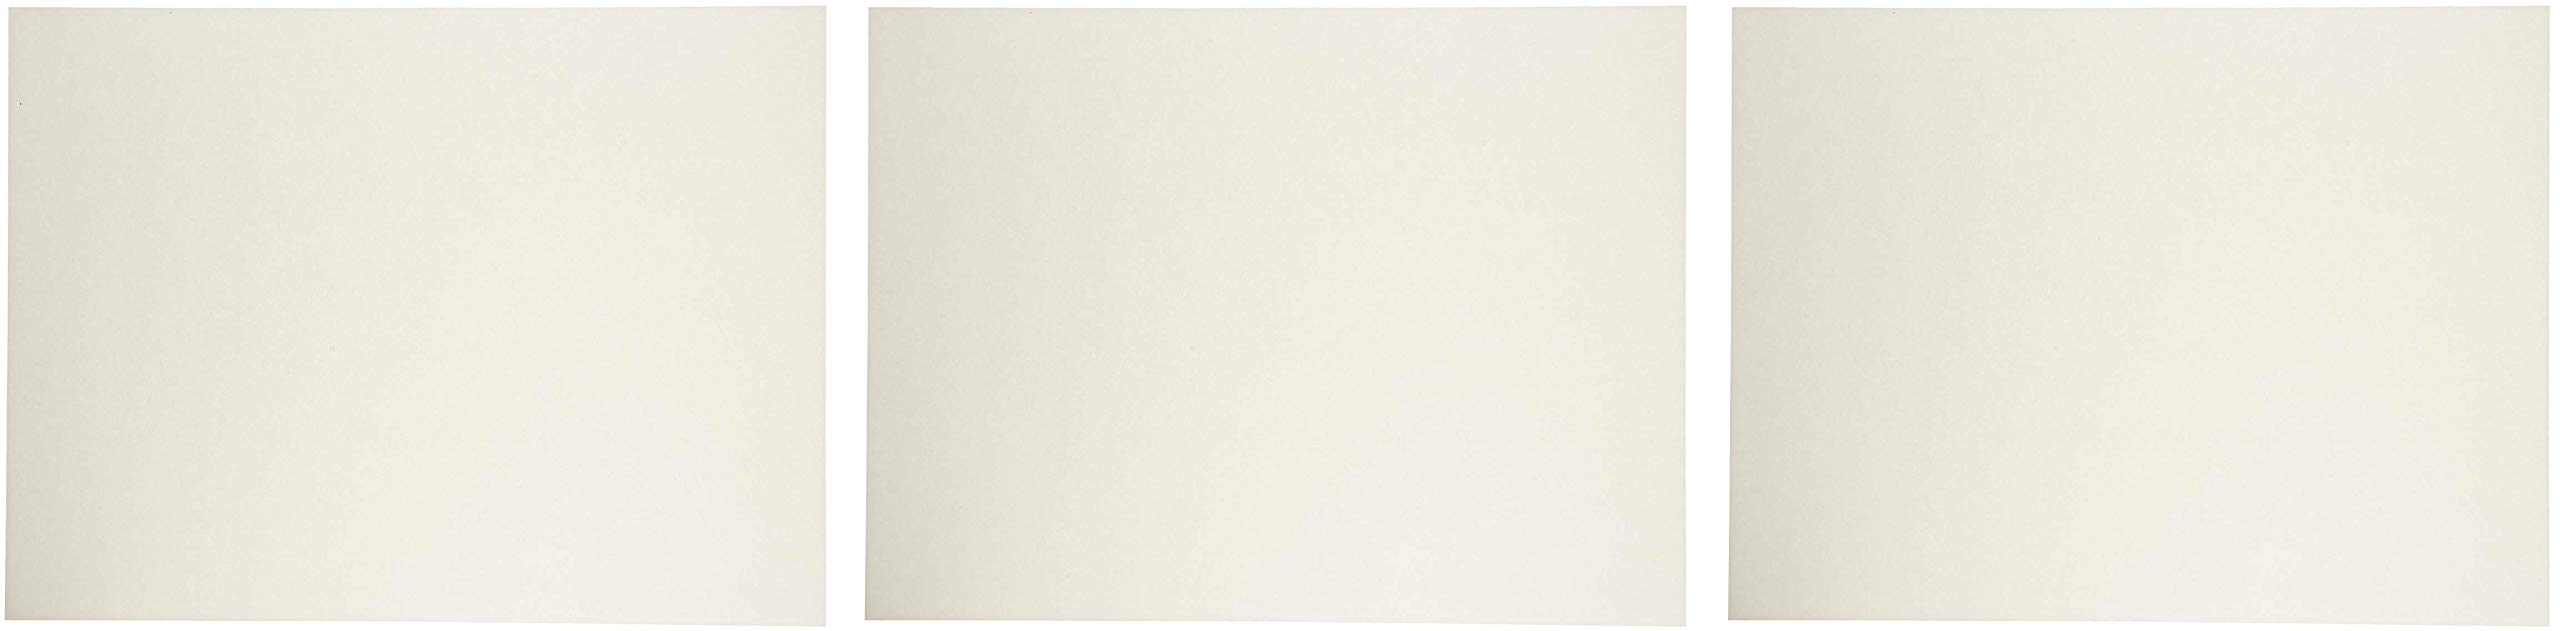 Sax Watercolor Paper, 18 x 24 Inches, 90 lb, Natural White, 50 Sheets (3 X Pack of 50)